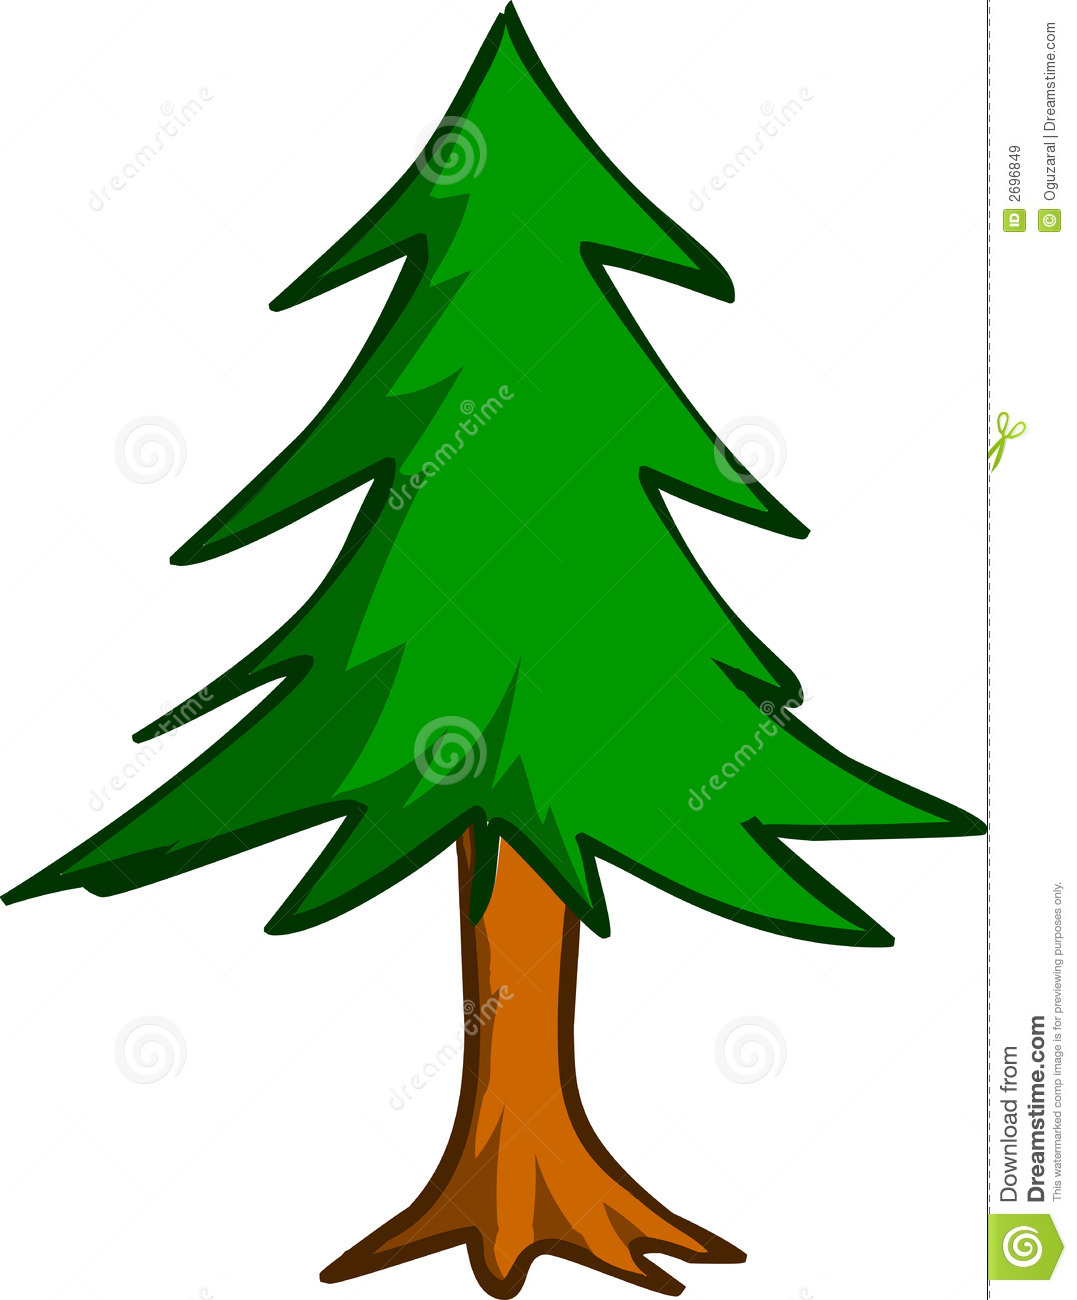 Tall thin tree clipart png freeuse library Pine Tree Clipart - Clipart Kid png freeuse library